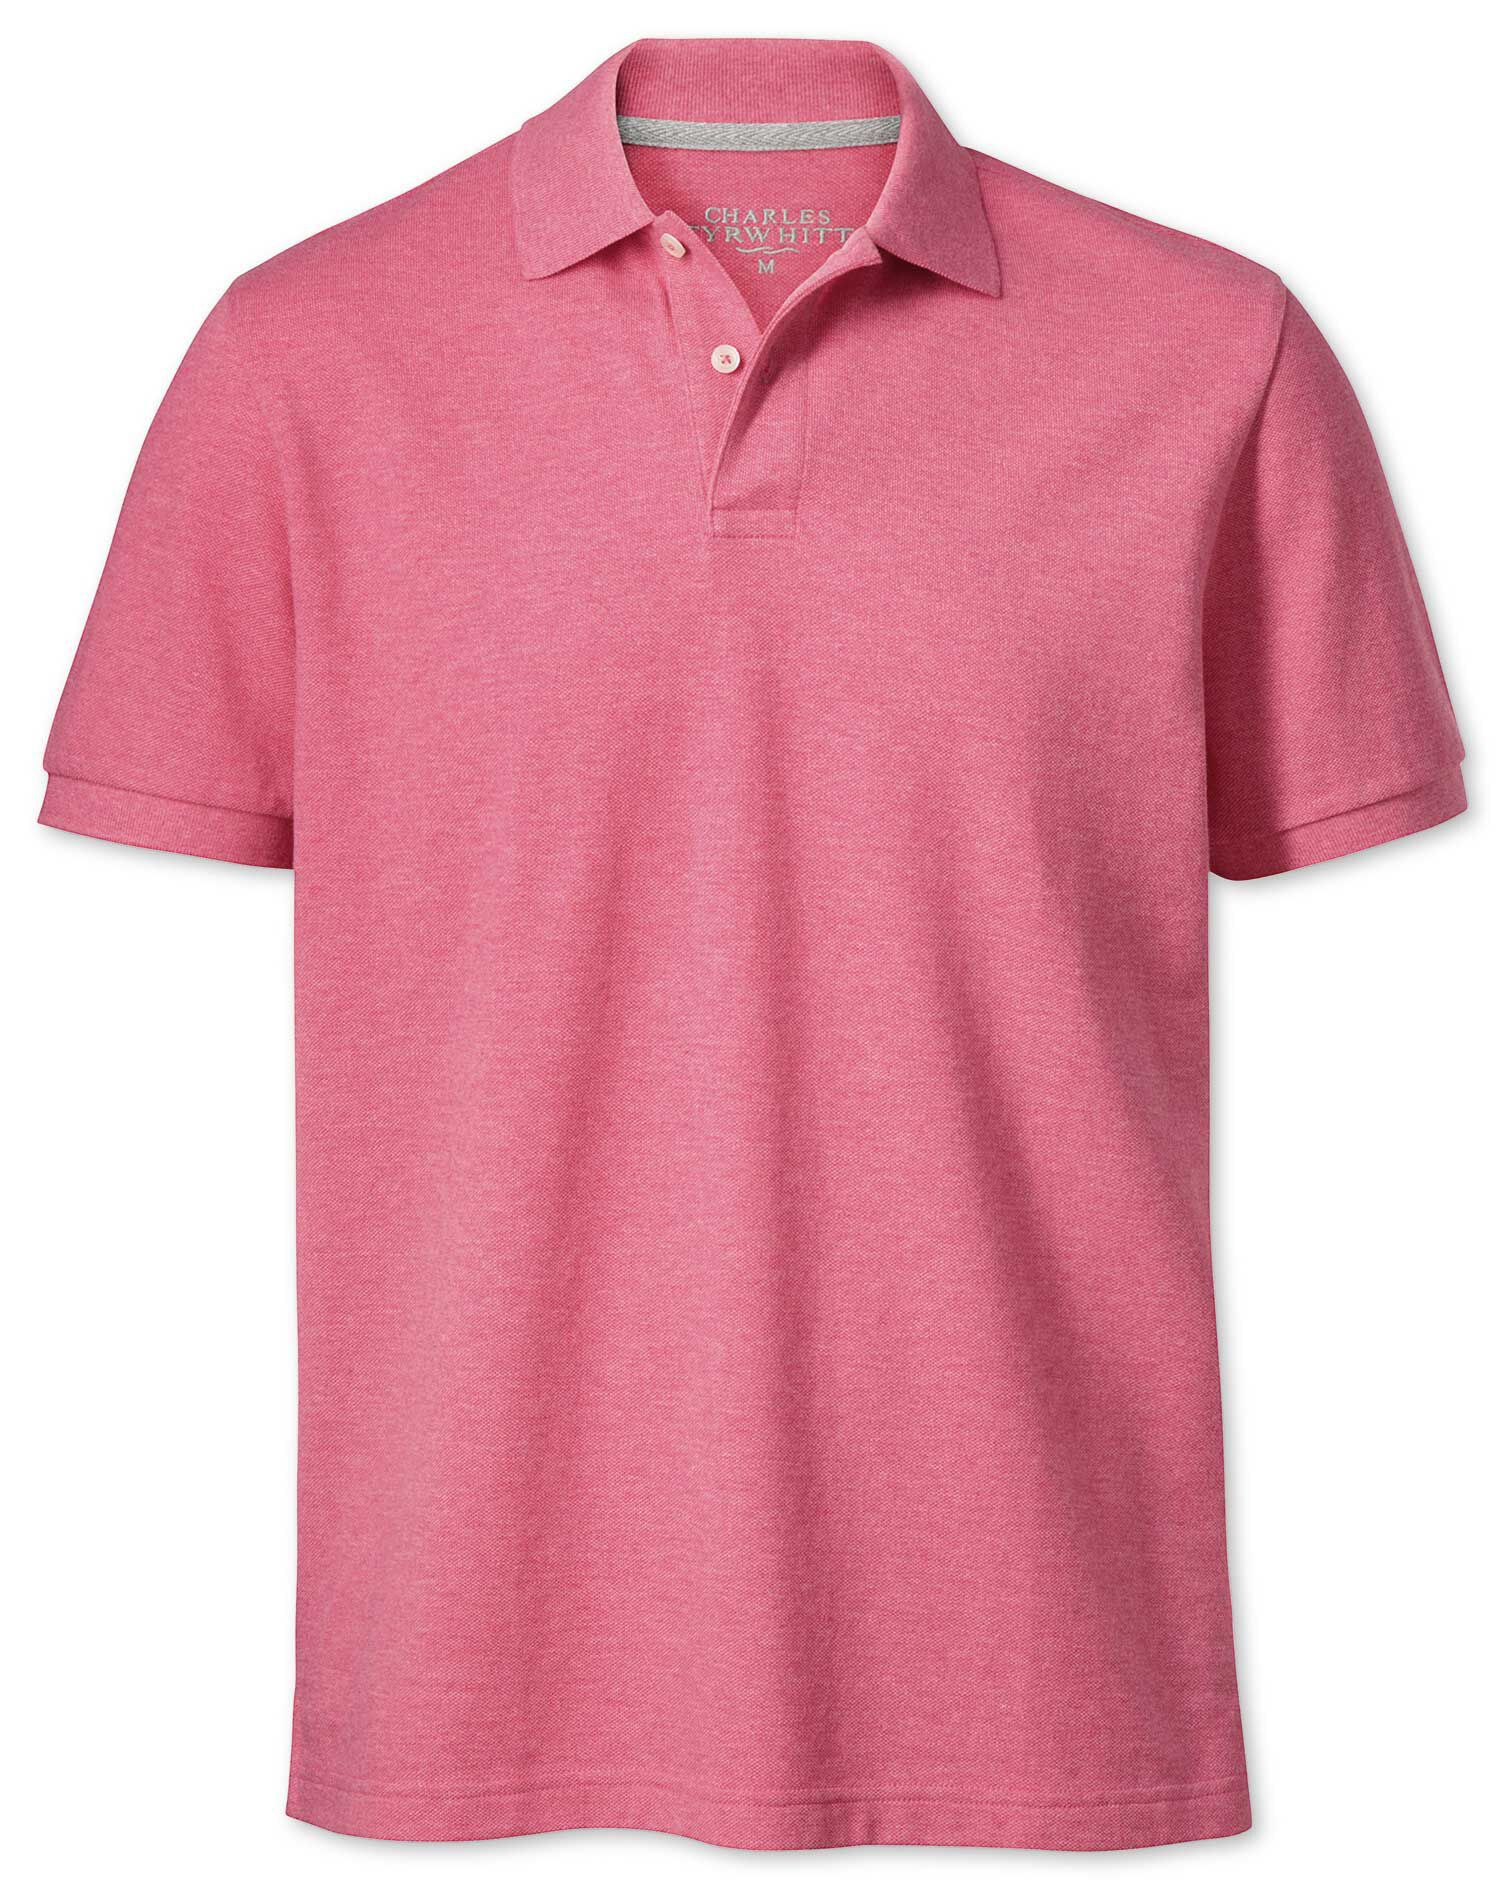 Dark Pink Pique Cotton Polo Size Medium by Charles Tyrwhitt